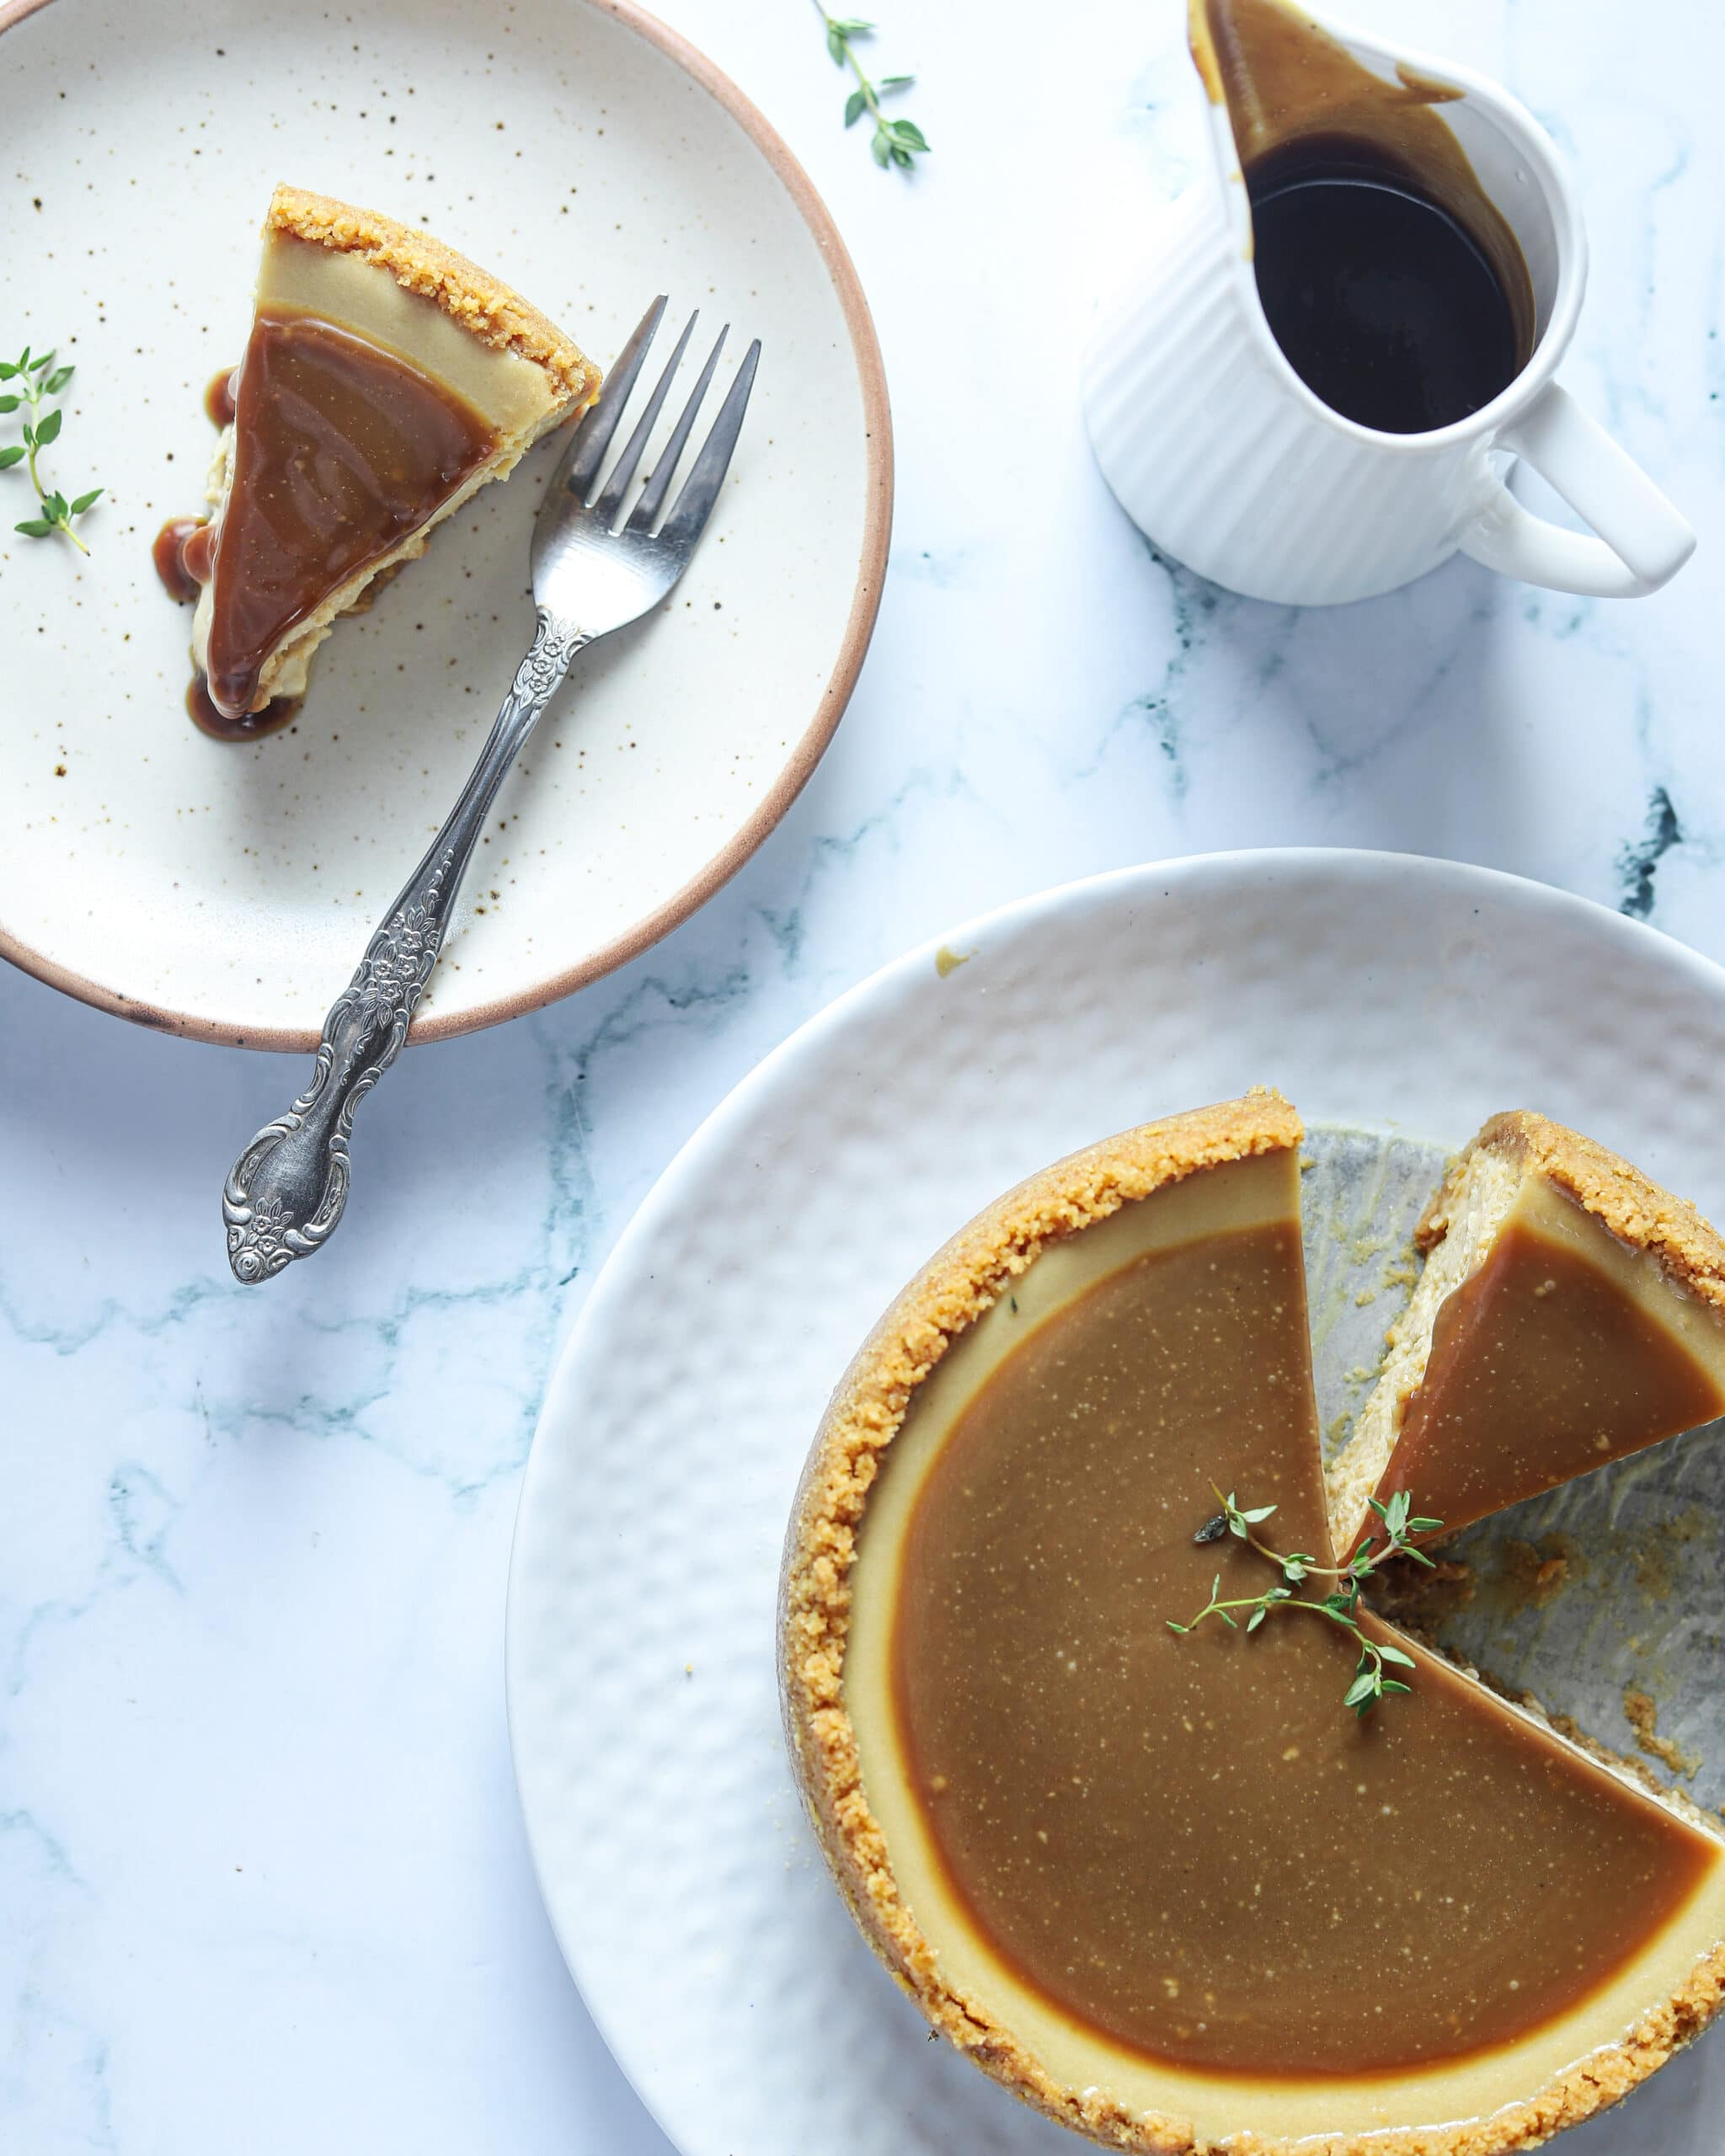 Earl Grey Cheesecake. This Earl Grey Cheesecake is a holiday favorite dessert, with a creamy texture, and delicate flavor. It has an Earl Grey tea-infused cheesecake filling and a Biscoff buttery, crisp crust. This tea-infused cheesecake is the perfect dessert for any occasion.